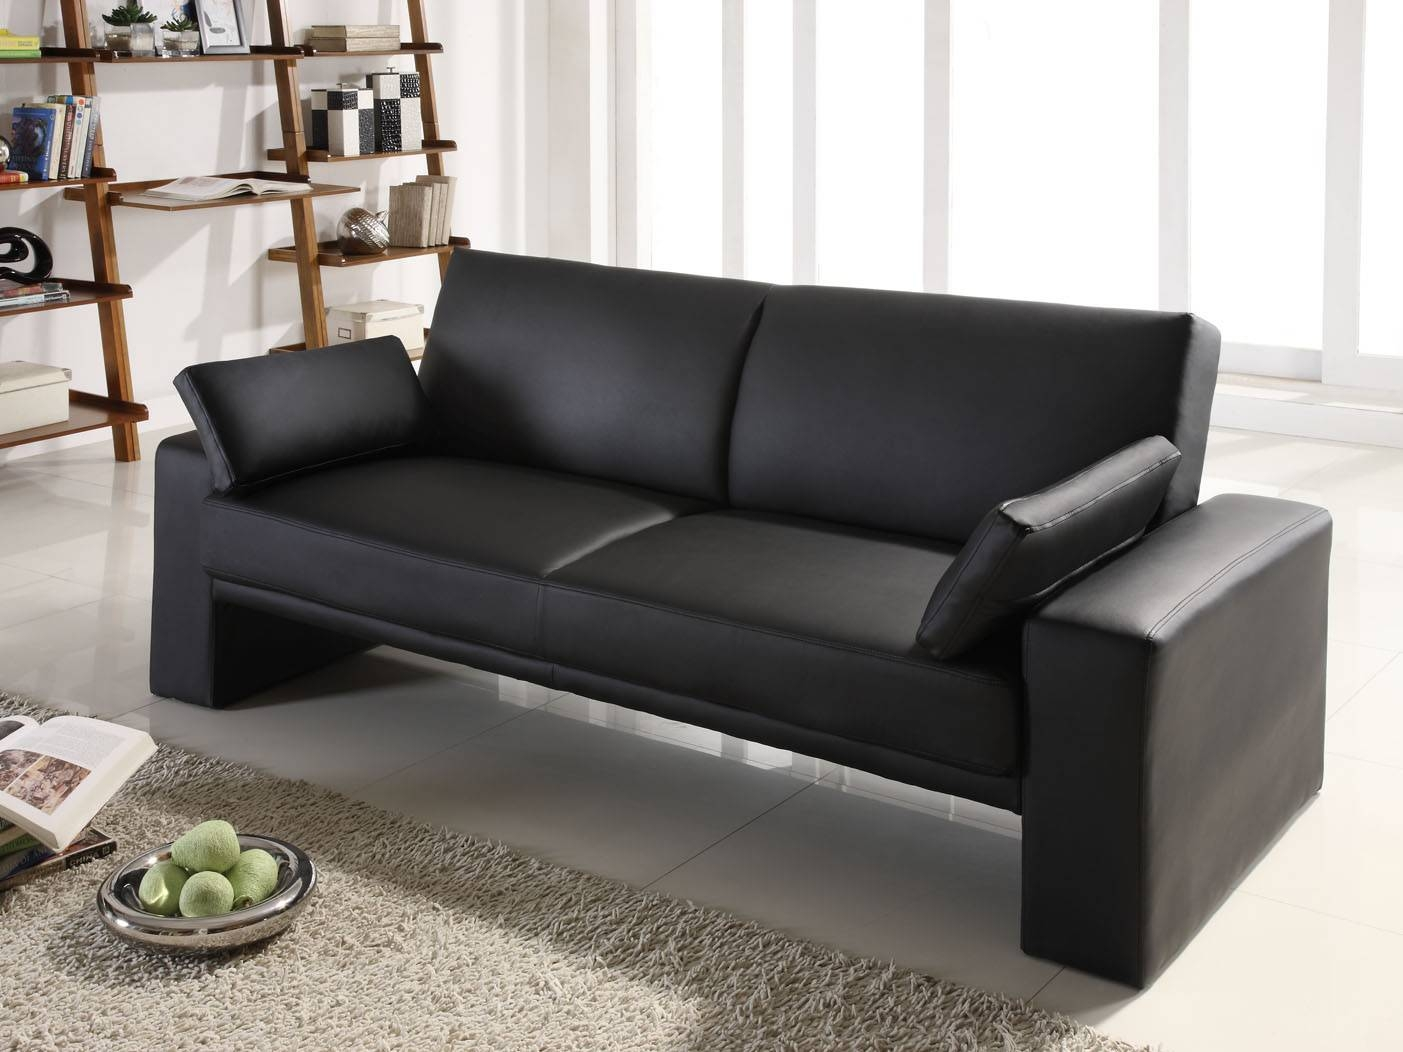 Black Leather Convertible Sofa 92 With Black Leather Convertible pertaining to Black Leather Convertible Sofas (Image 1 of 15)